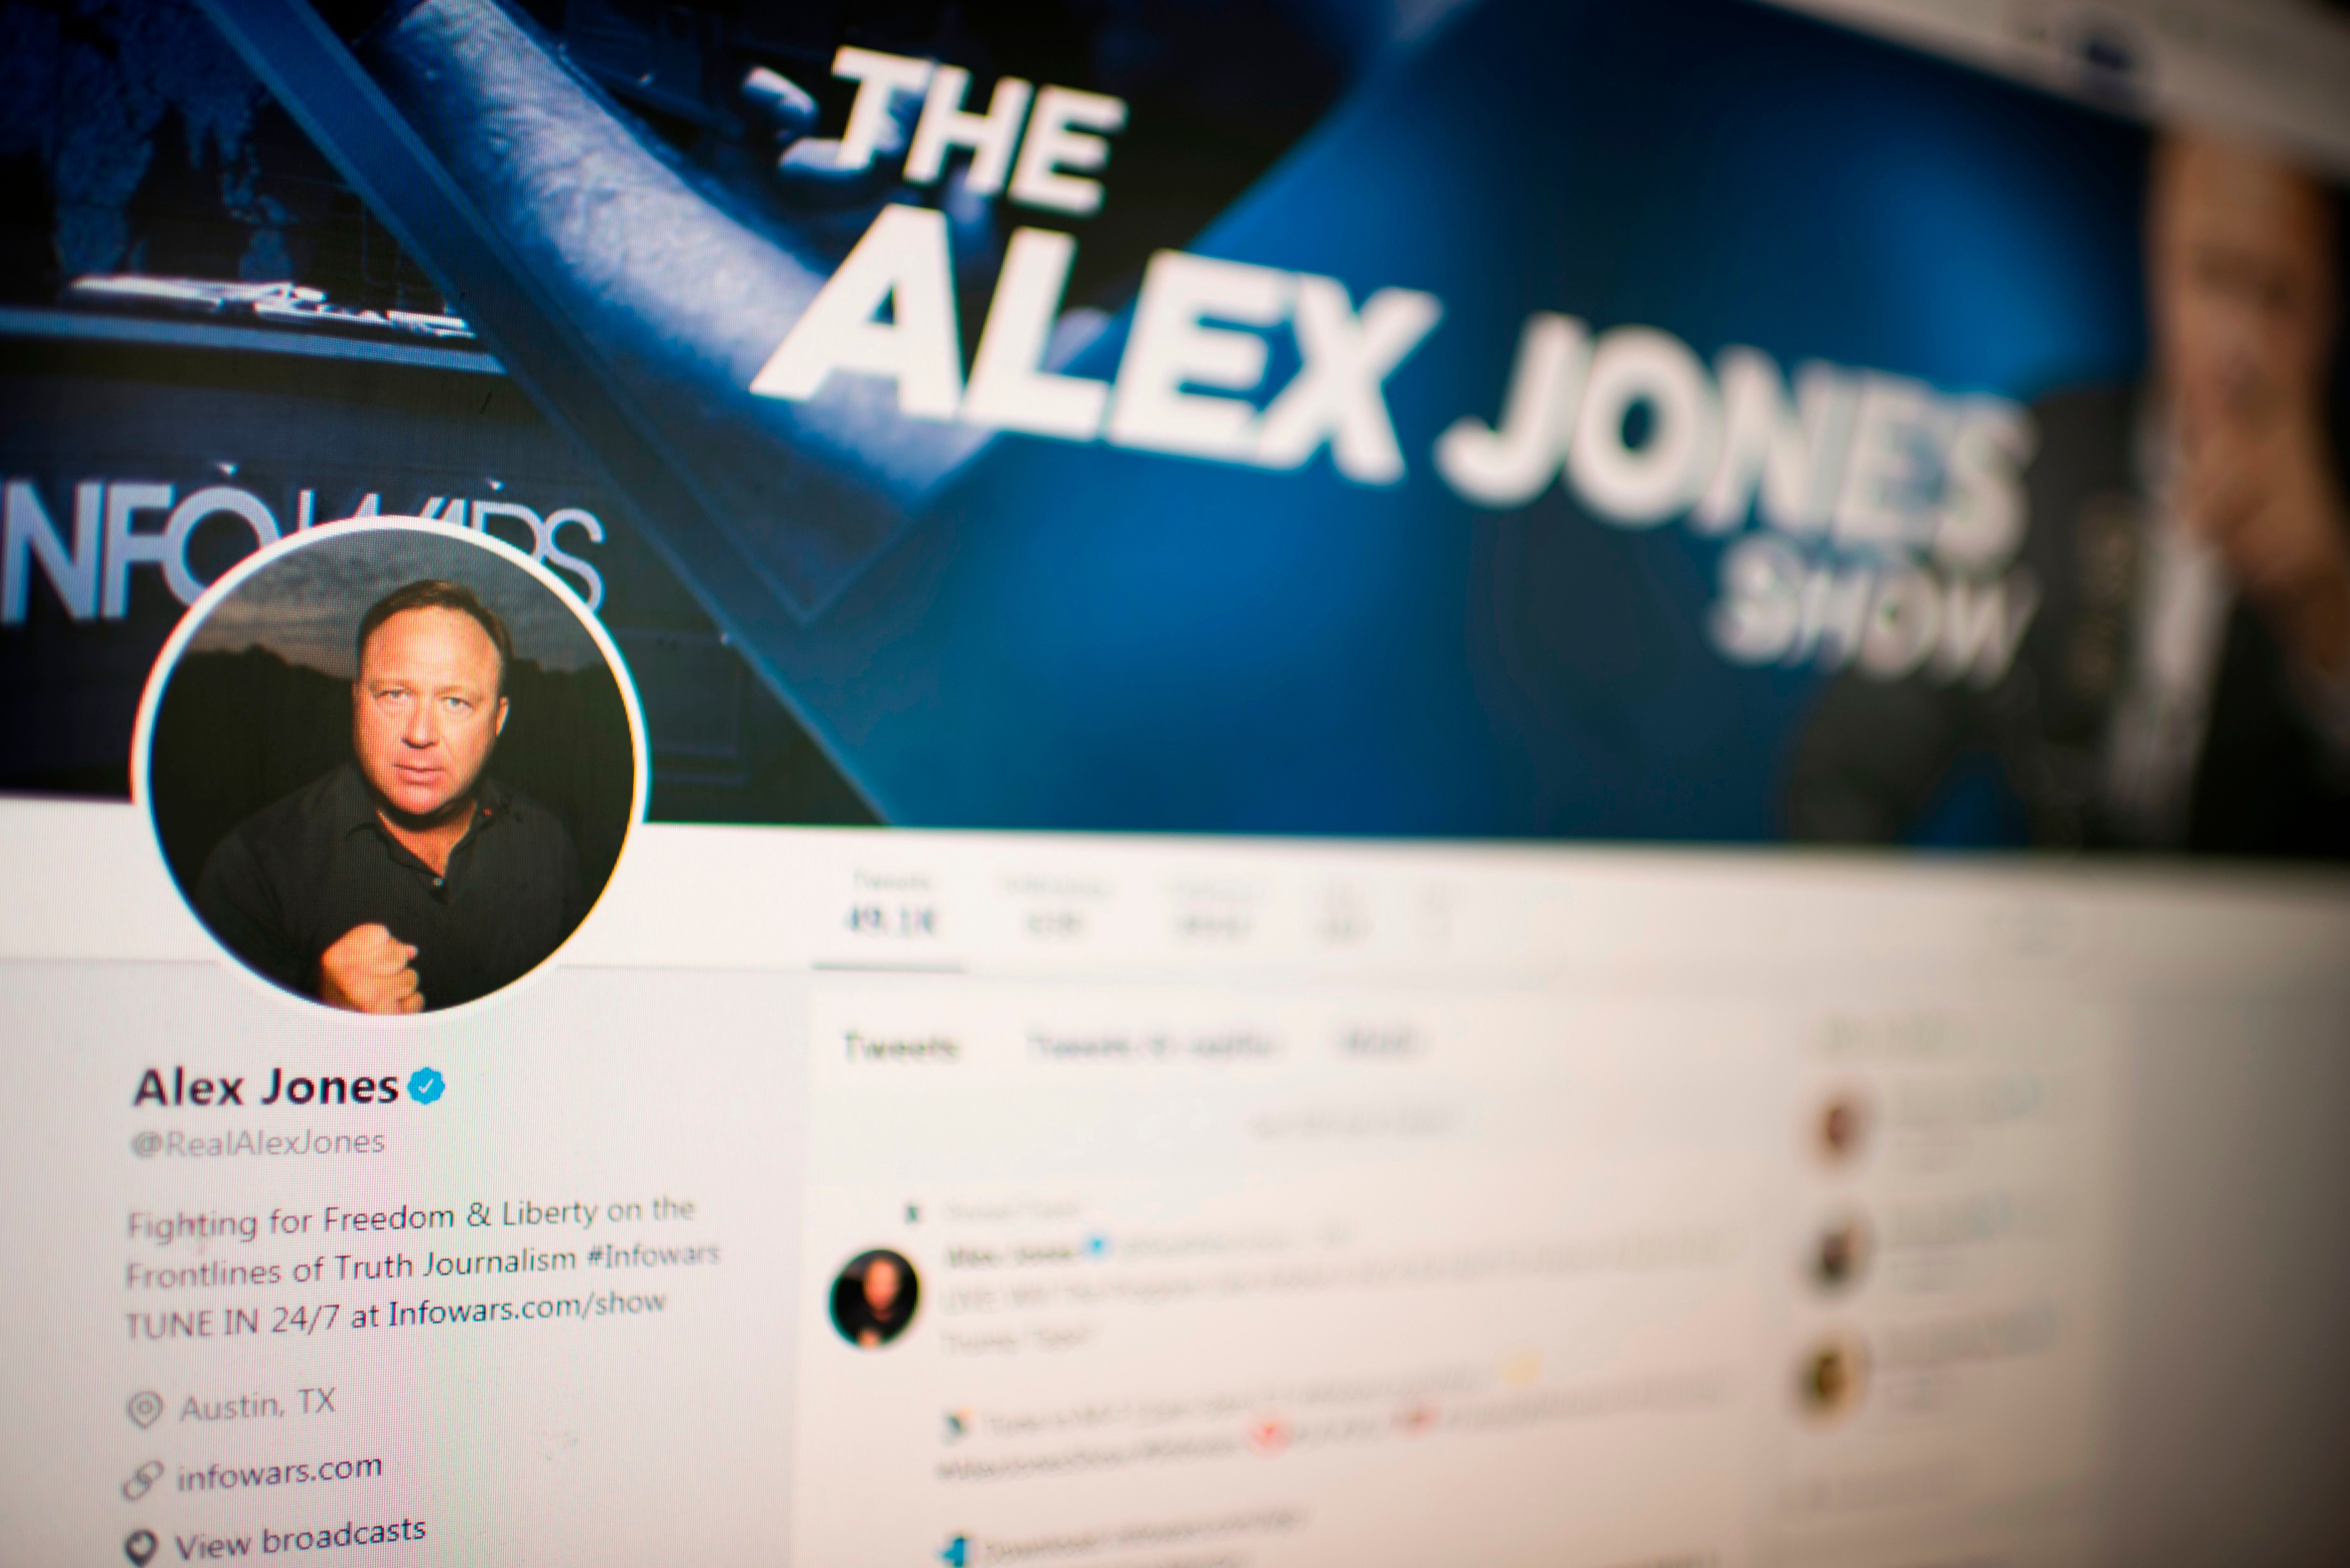 Picture showing a computer screen displaying the Twitter account of Far-right conspiracy theorist Alex Jones taken on August 15, 2018 in Washngton DC. - Far-right conspiracy theorist Alex Jones said his Twitter account had been suspended for a week, the latest online platform to take action against the activist. Twitter suspended the personal account of Jones, who operates the Infowars website that has disputed the veracity of the September 11 attacks, the Sandy Hook school massacre and other events. (Photo by Eric BARADAT / AFP)        (Photo credit should read ERIC BARADAT/AFP/Getty Images)